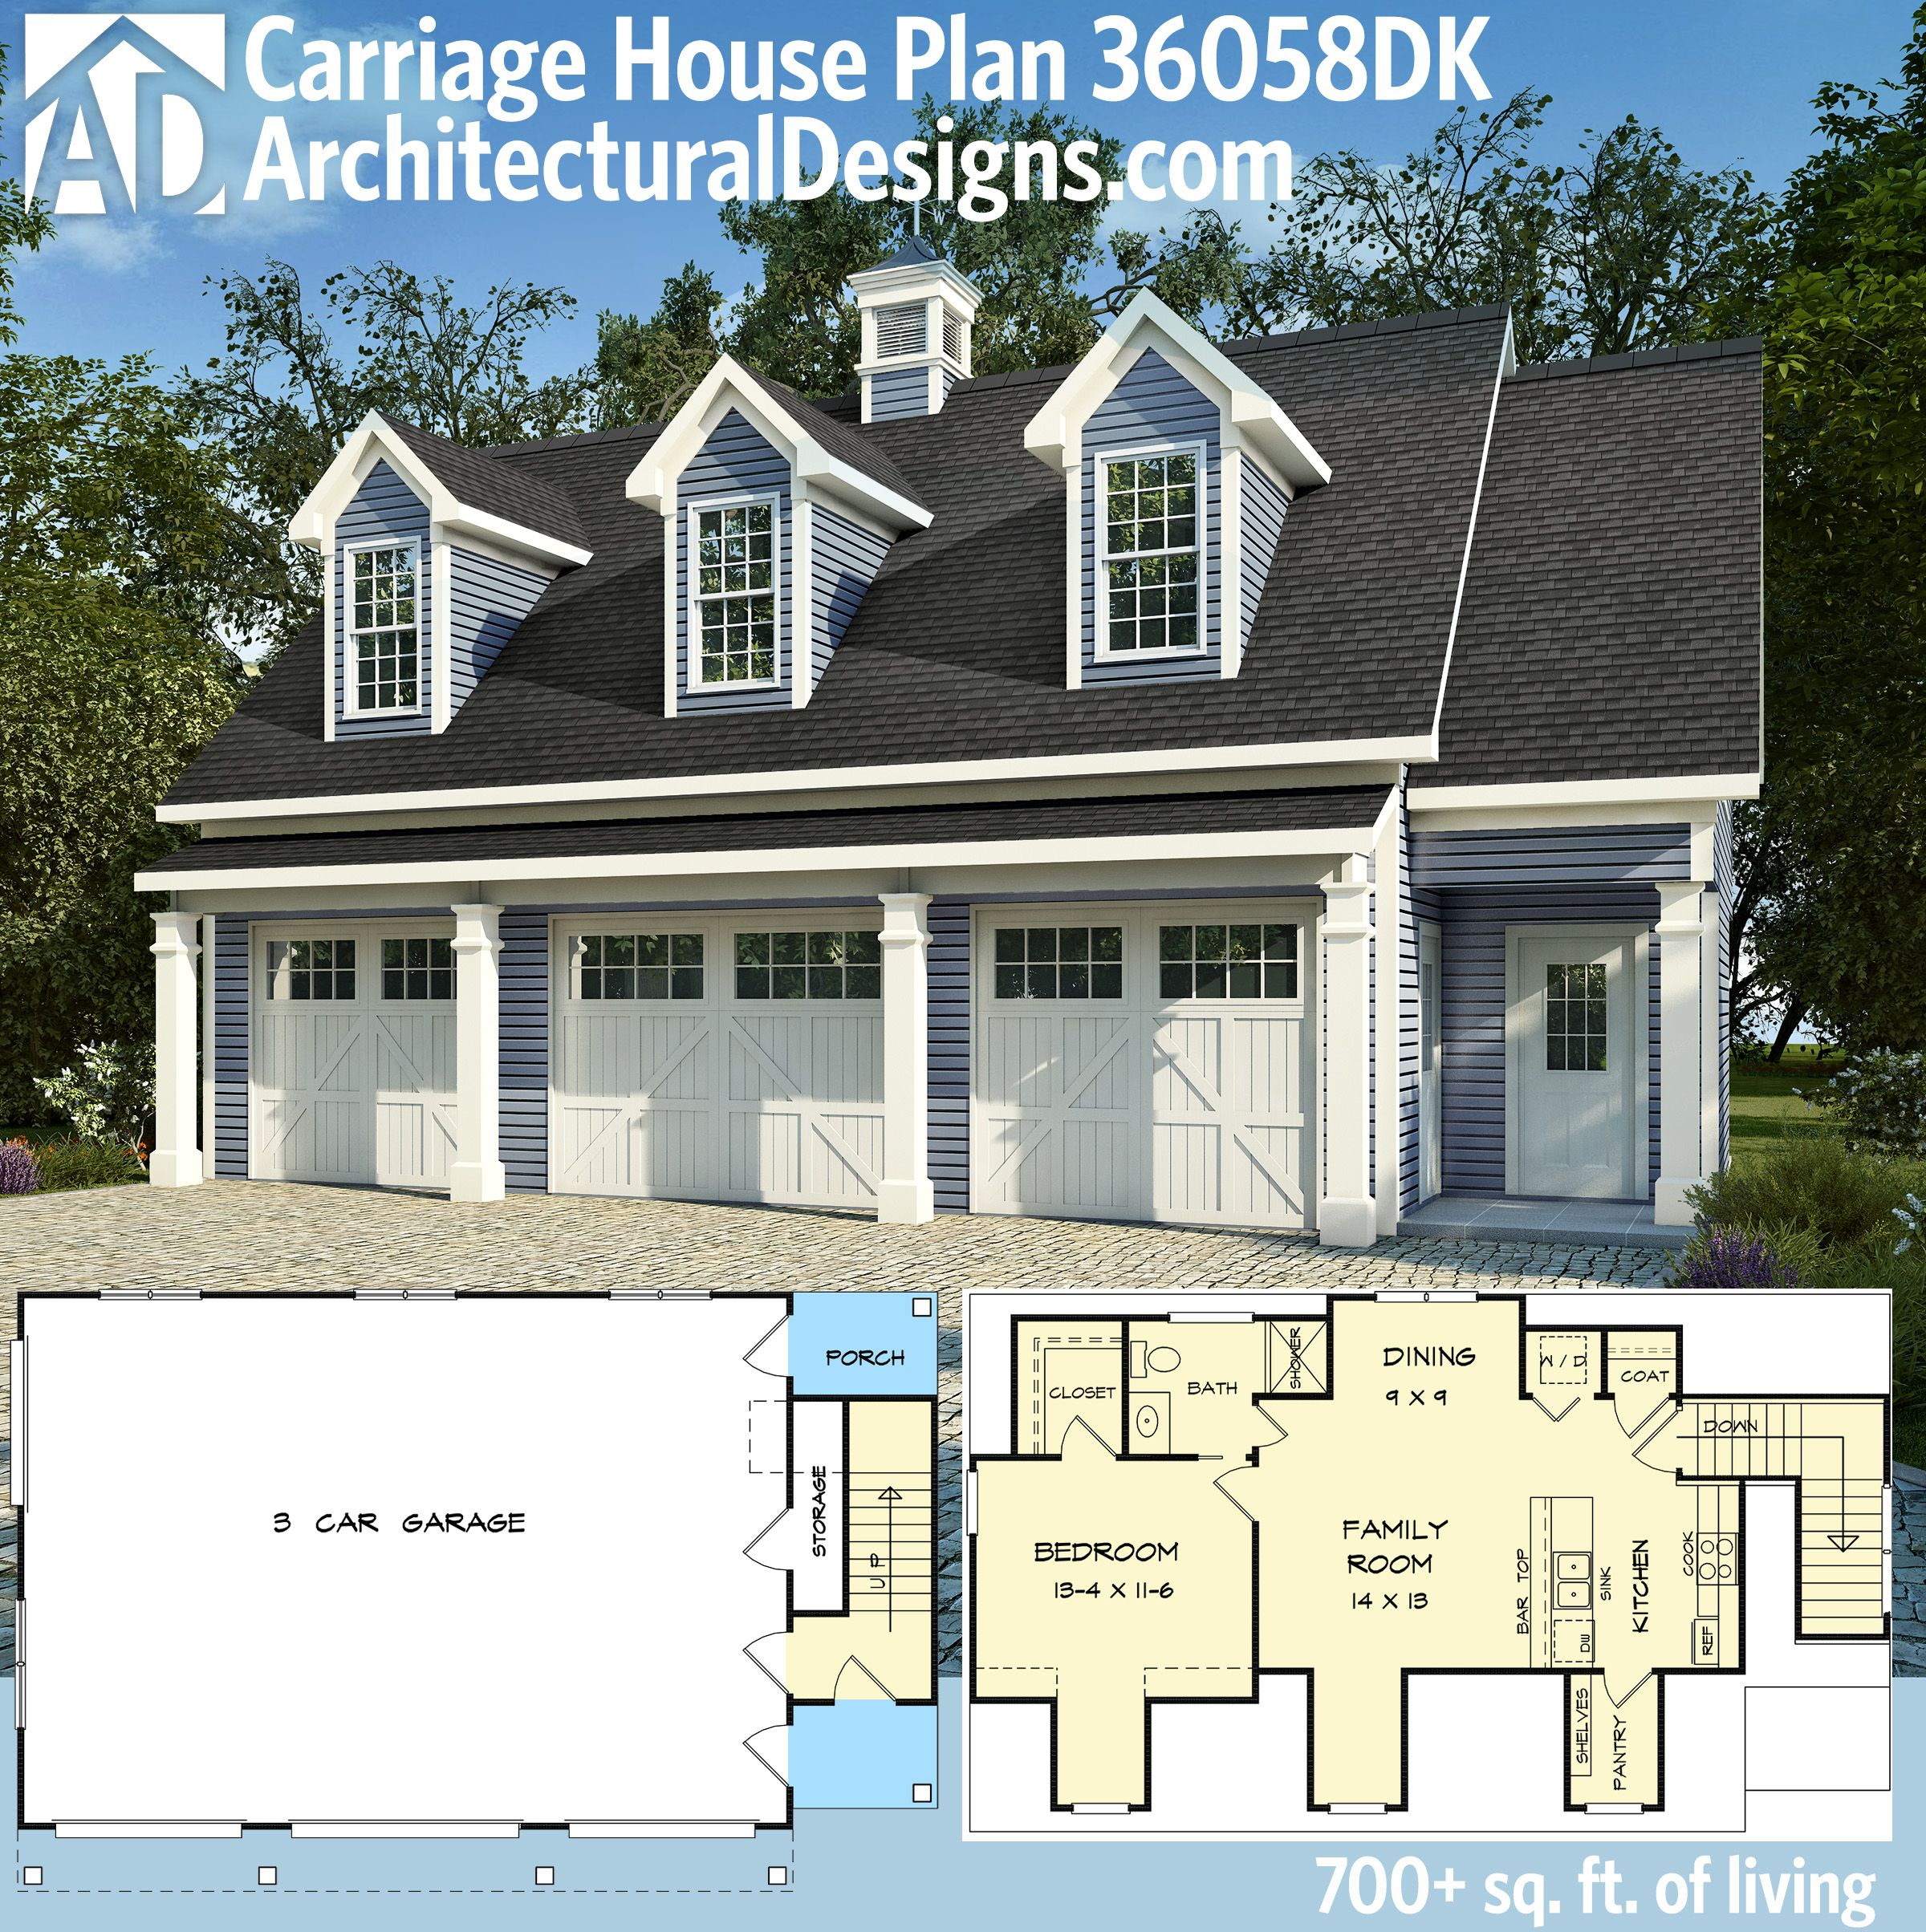 Plan 36058dk 3 car carriage house plan with 3 dormers for Garage apartment building plans